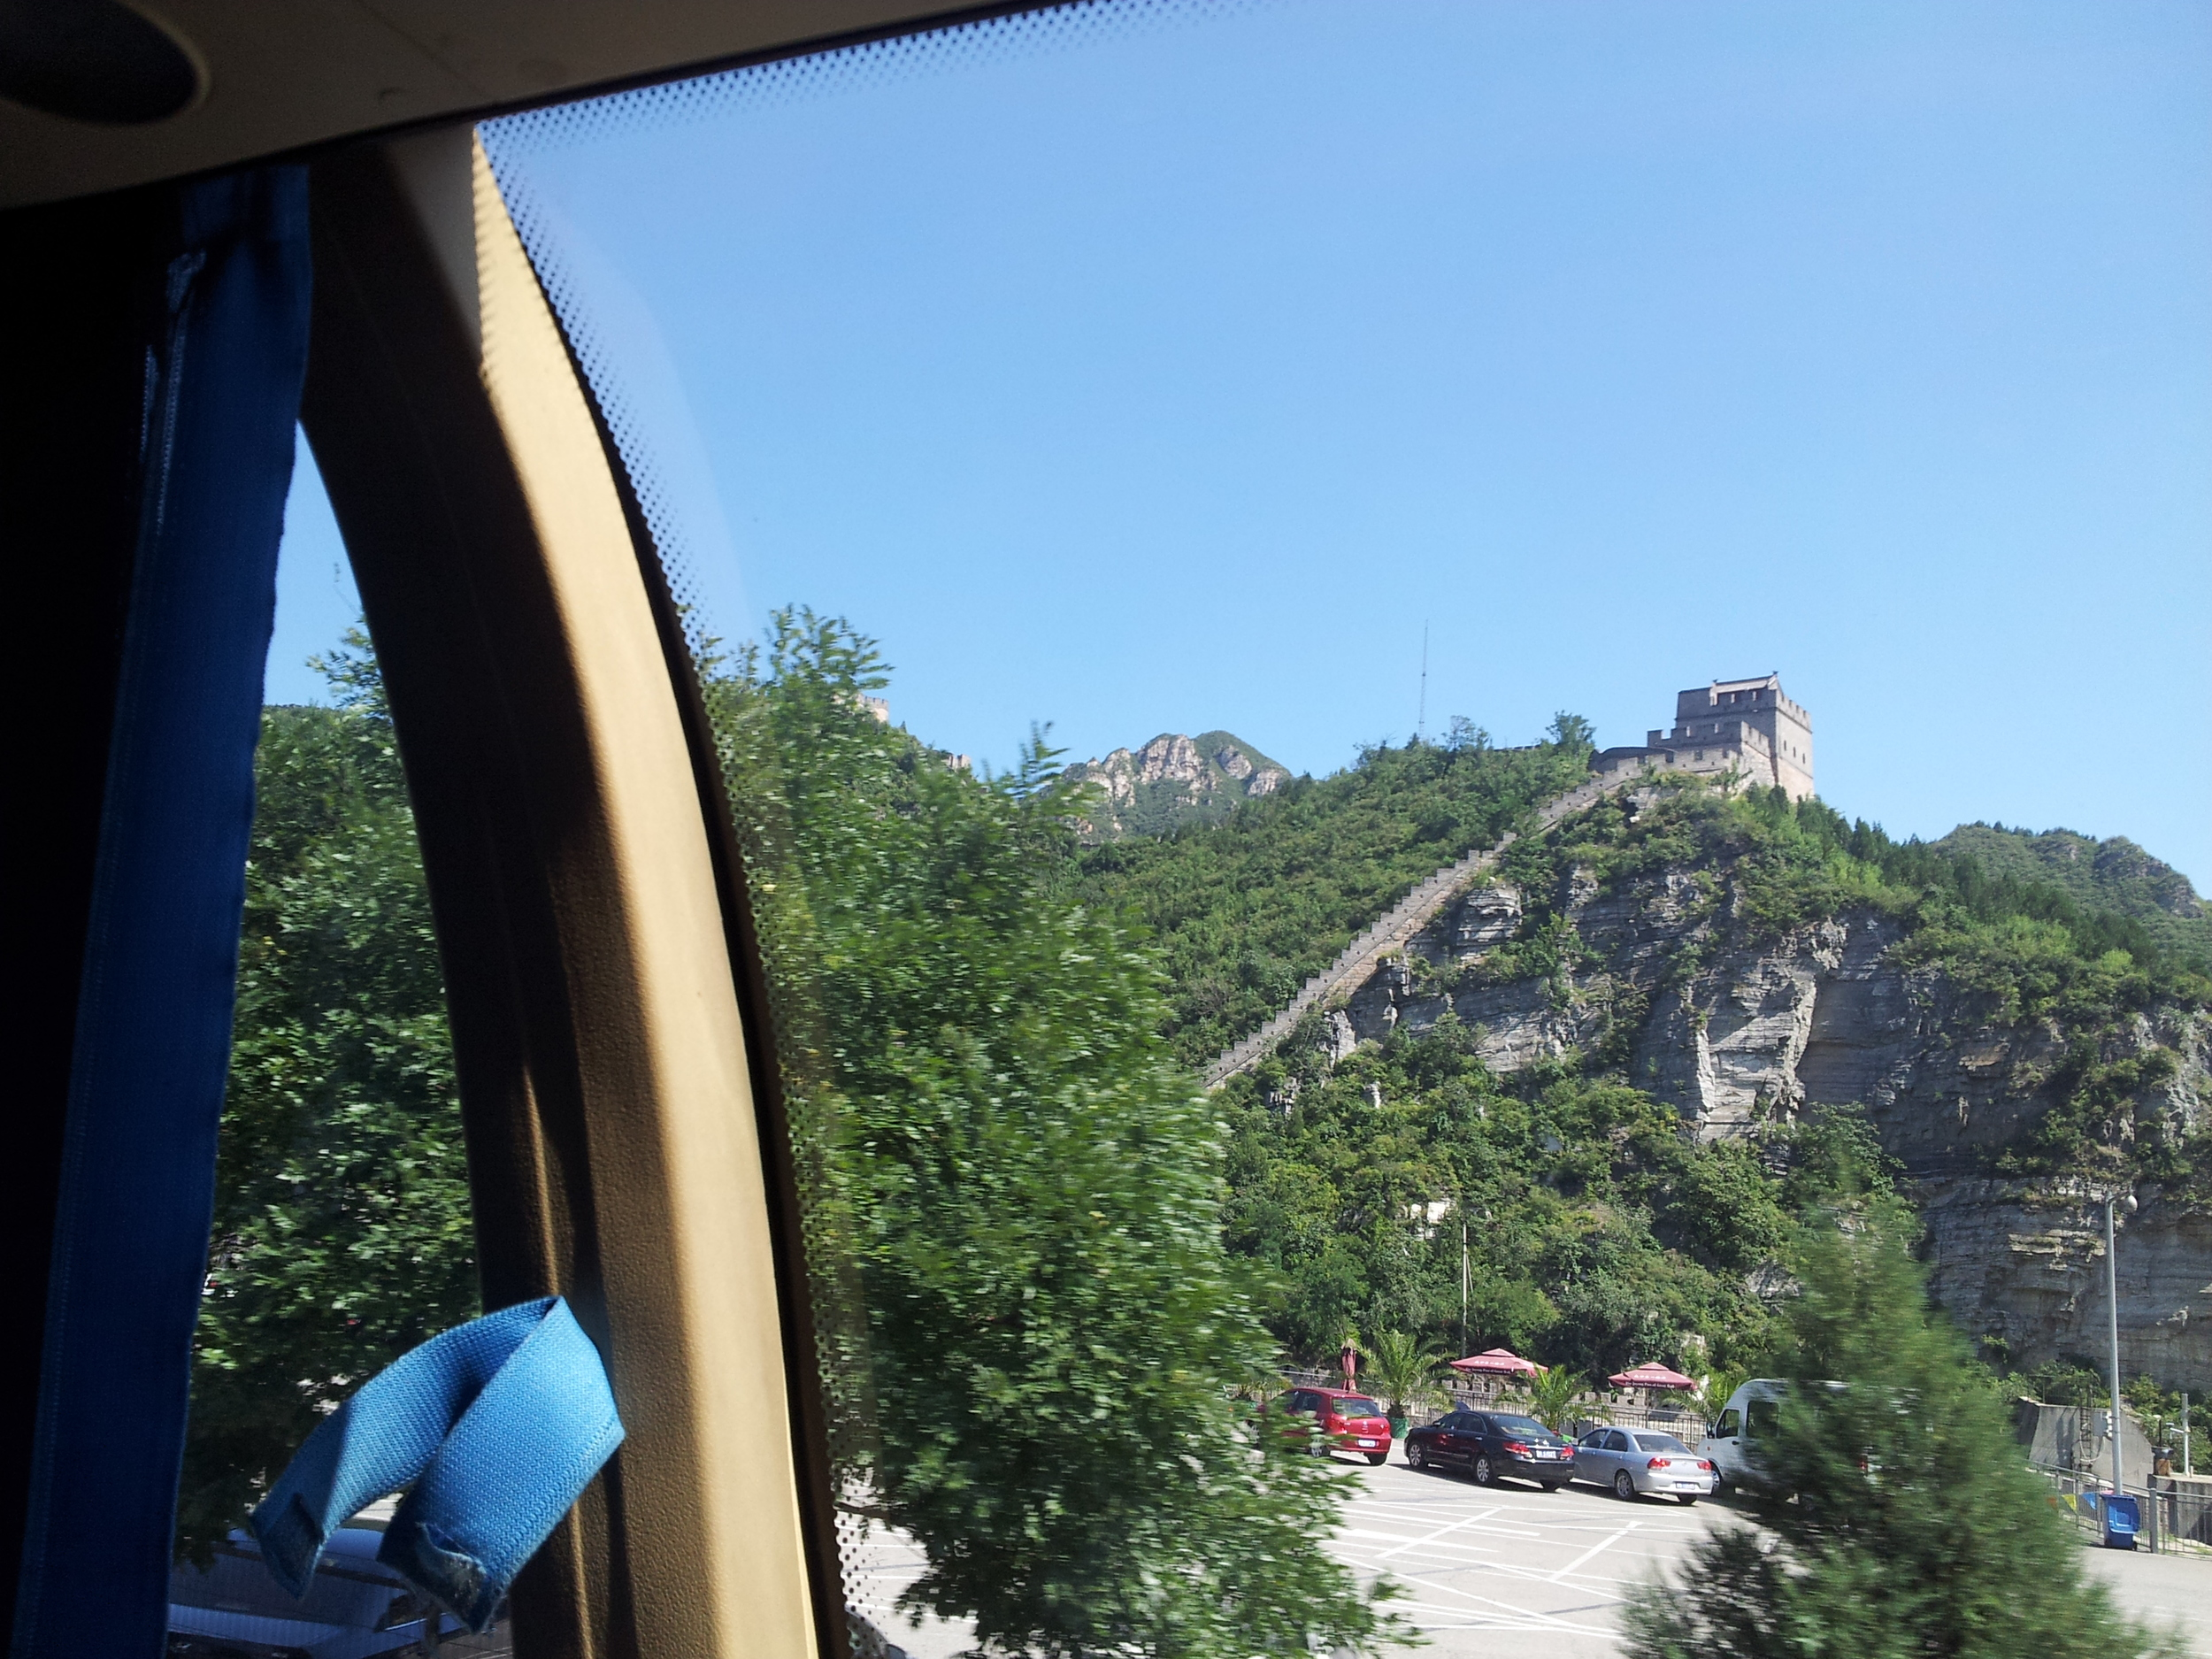 This is the Great Wall on the way to the resort.